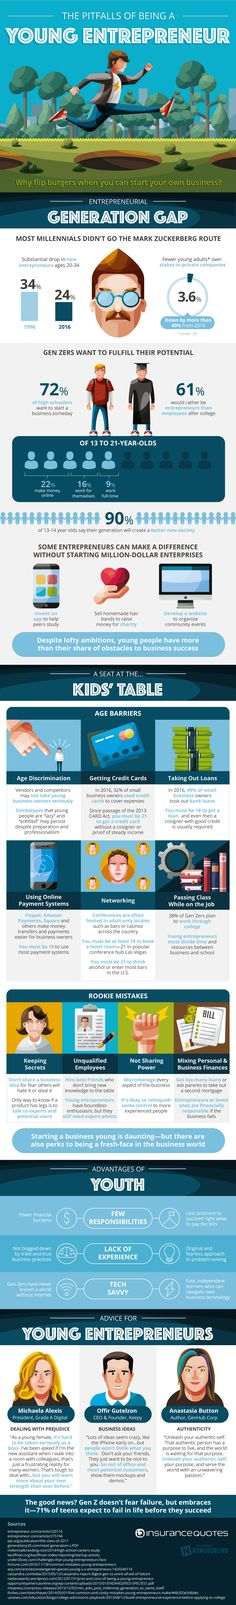 Infographic with stats about entrepreneurship problems and how younger generations deal with these problems.